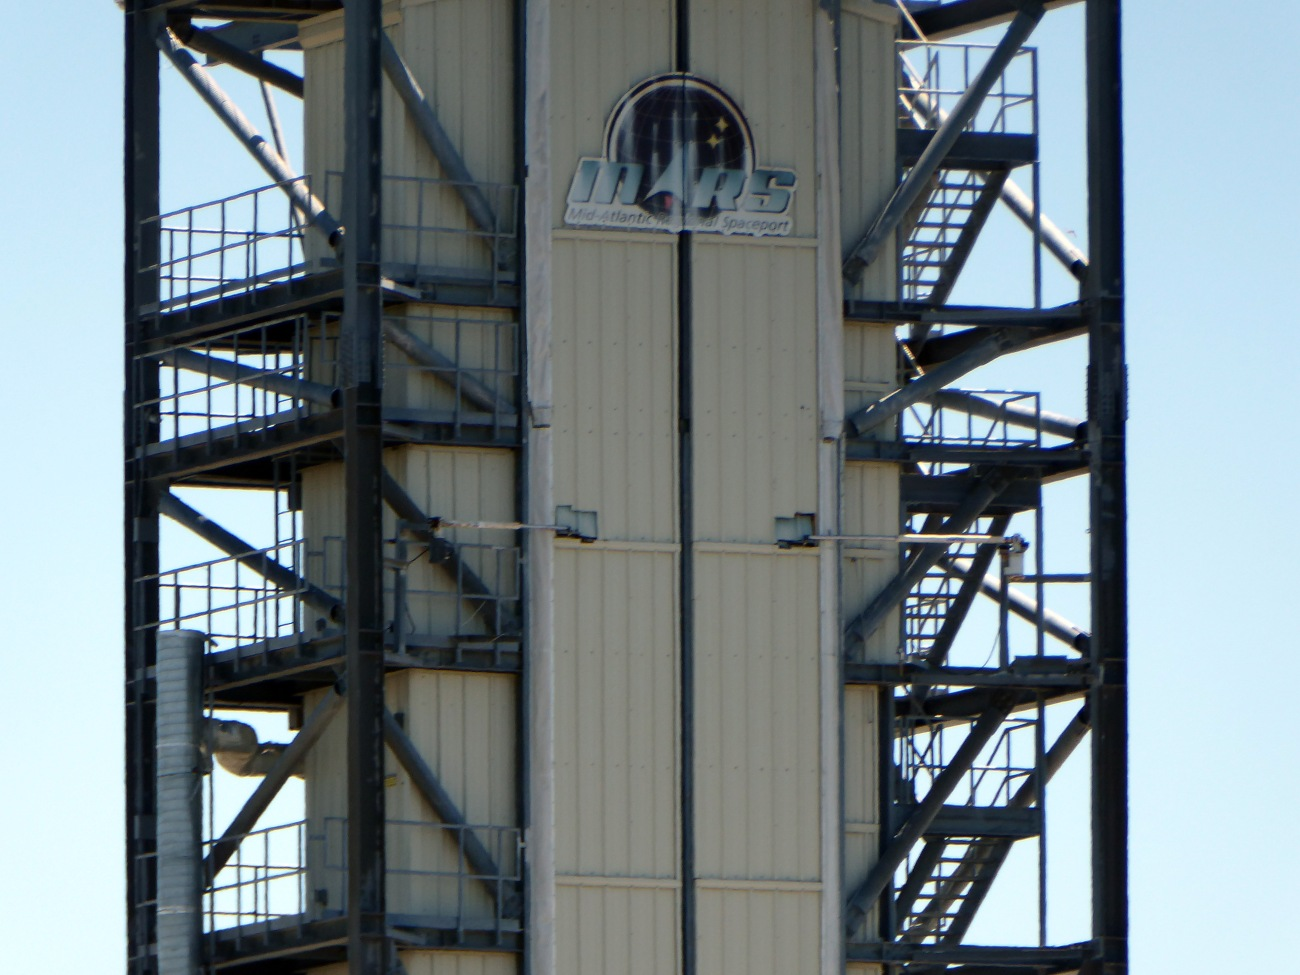 20170806_125824_Launch Gantry with Mid-Atlantic Regional Spaceport Logo - Copy